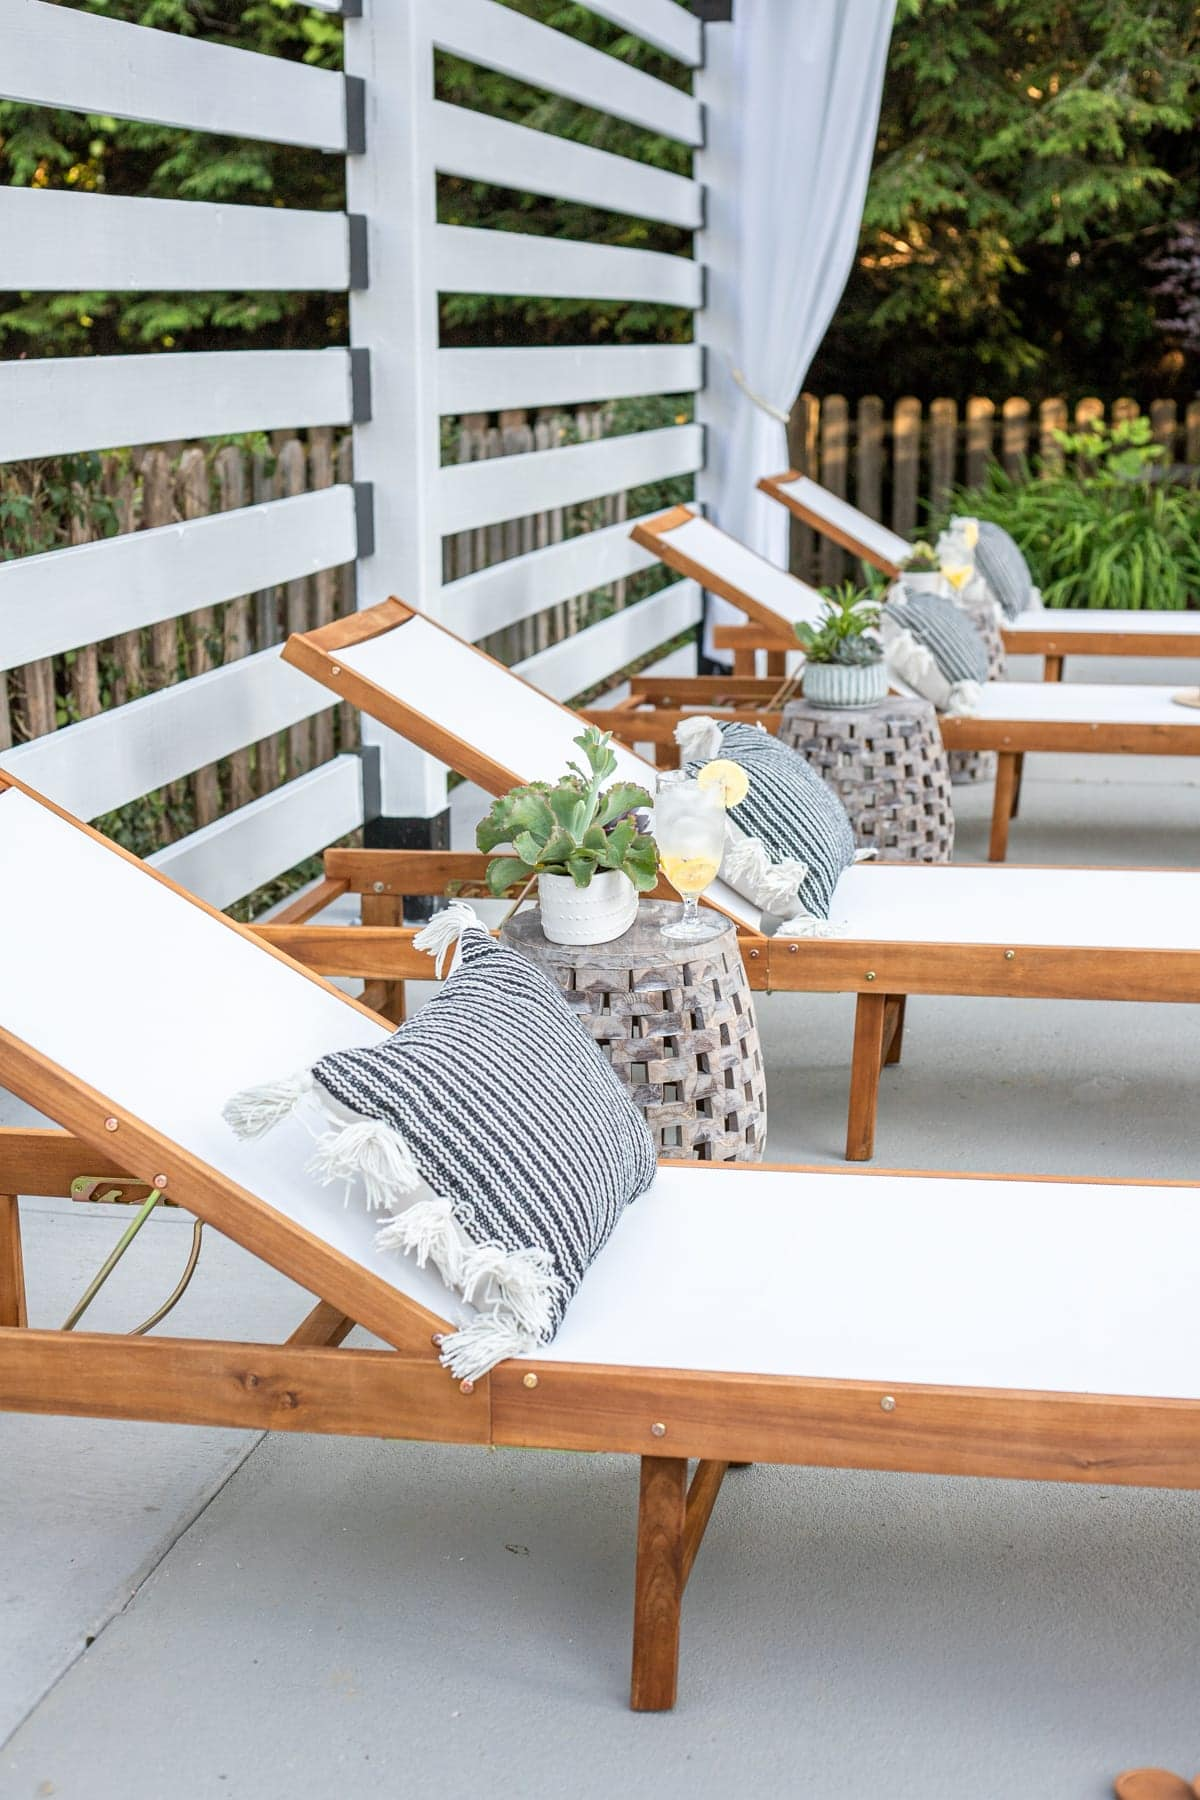 outdoor lounge chairs under white pergola with outdoor curtains and pillows